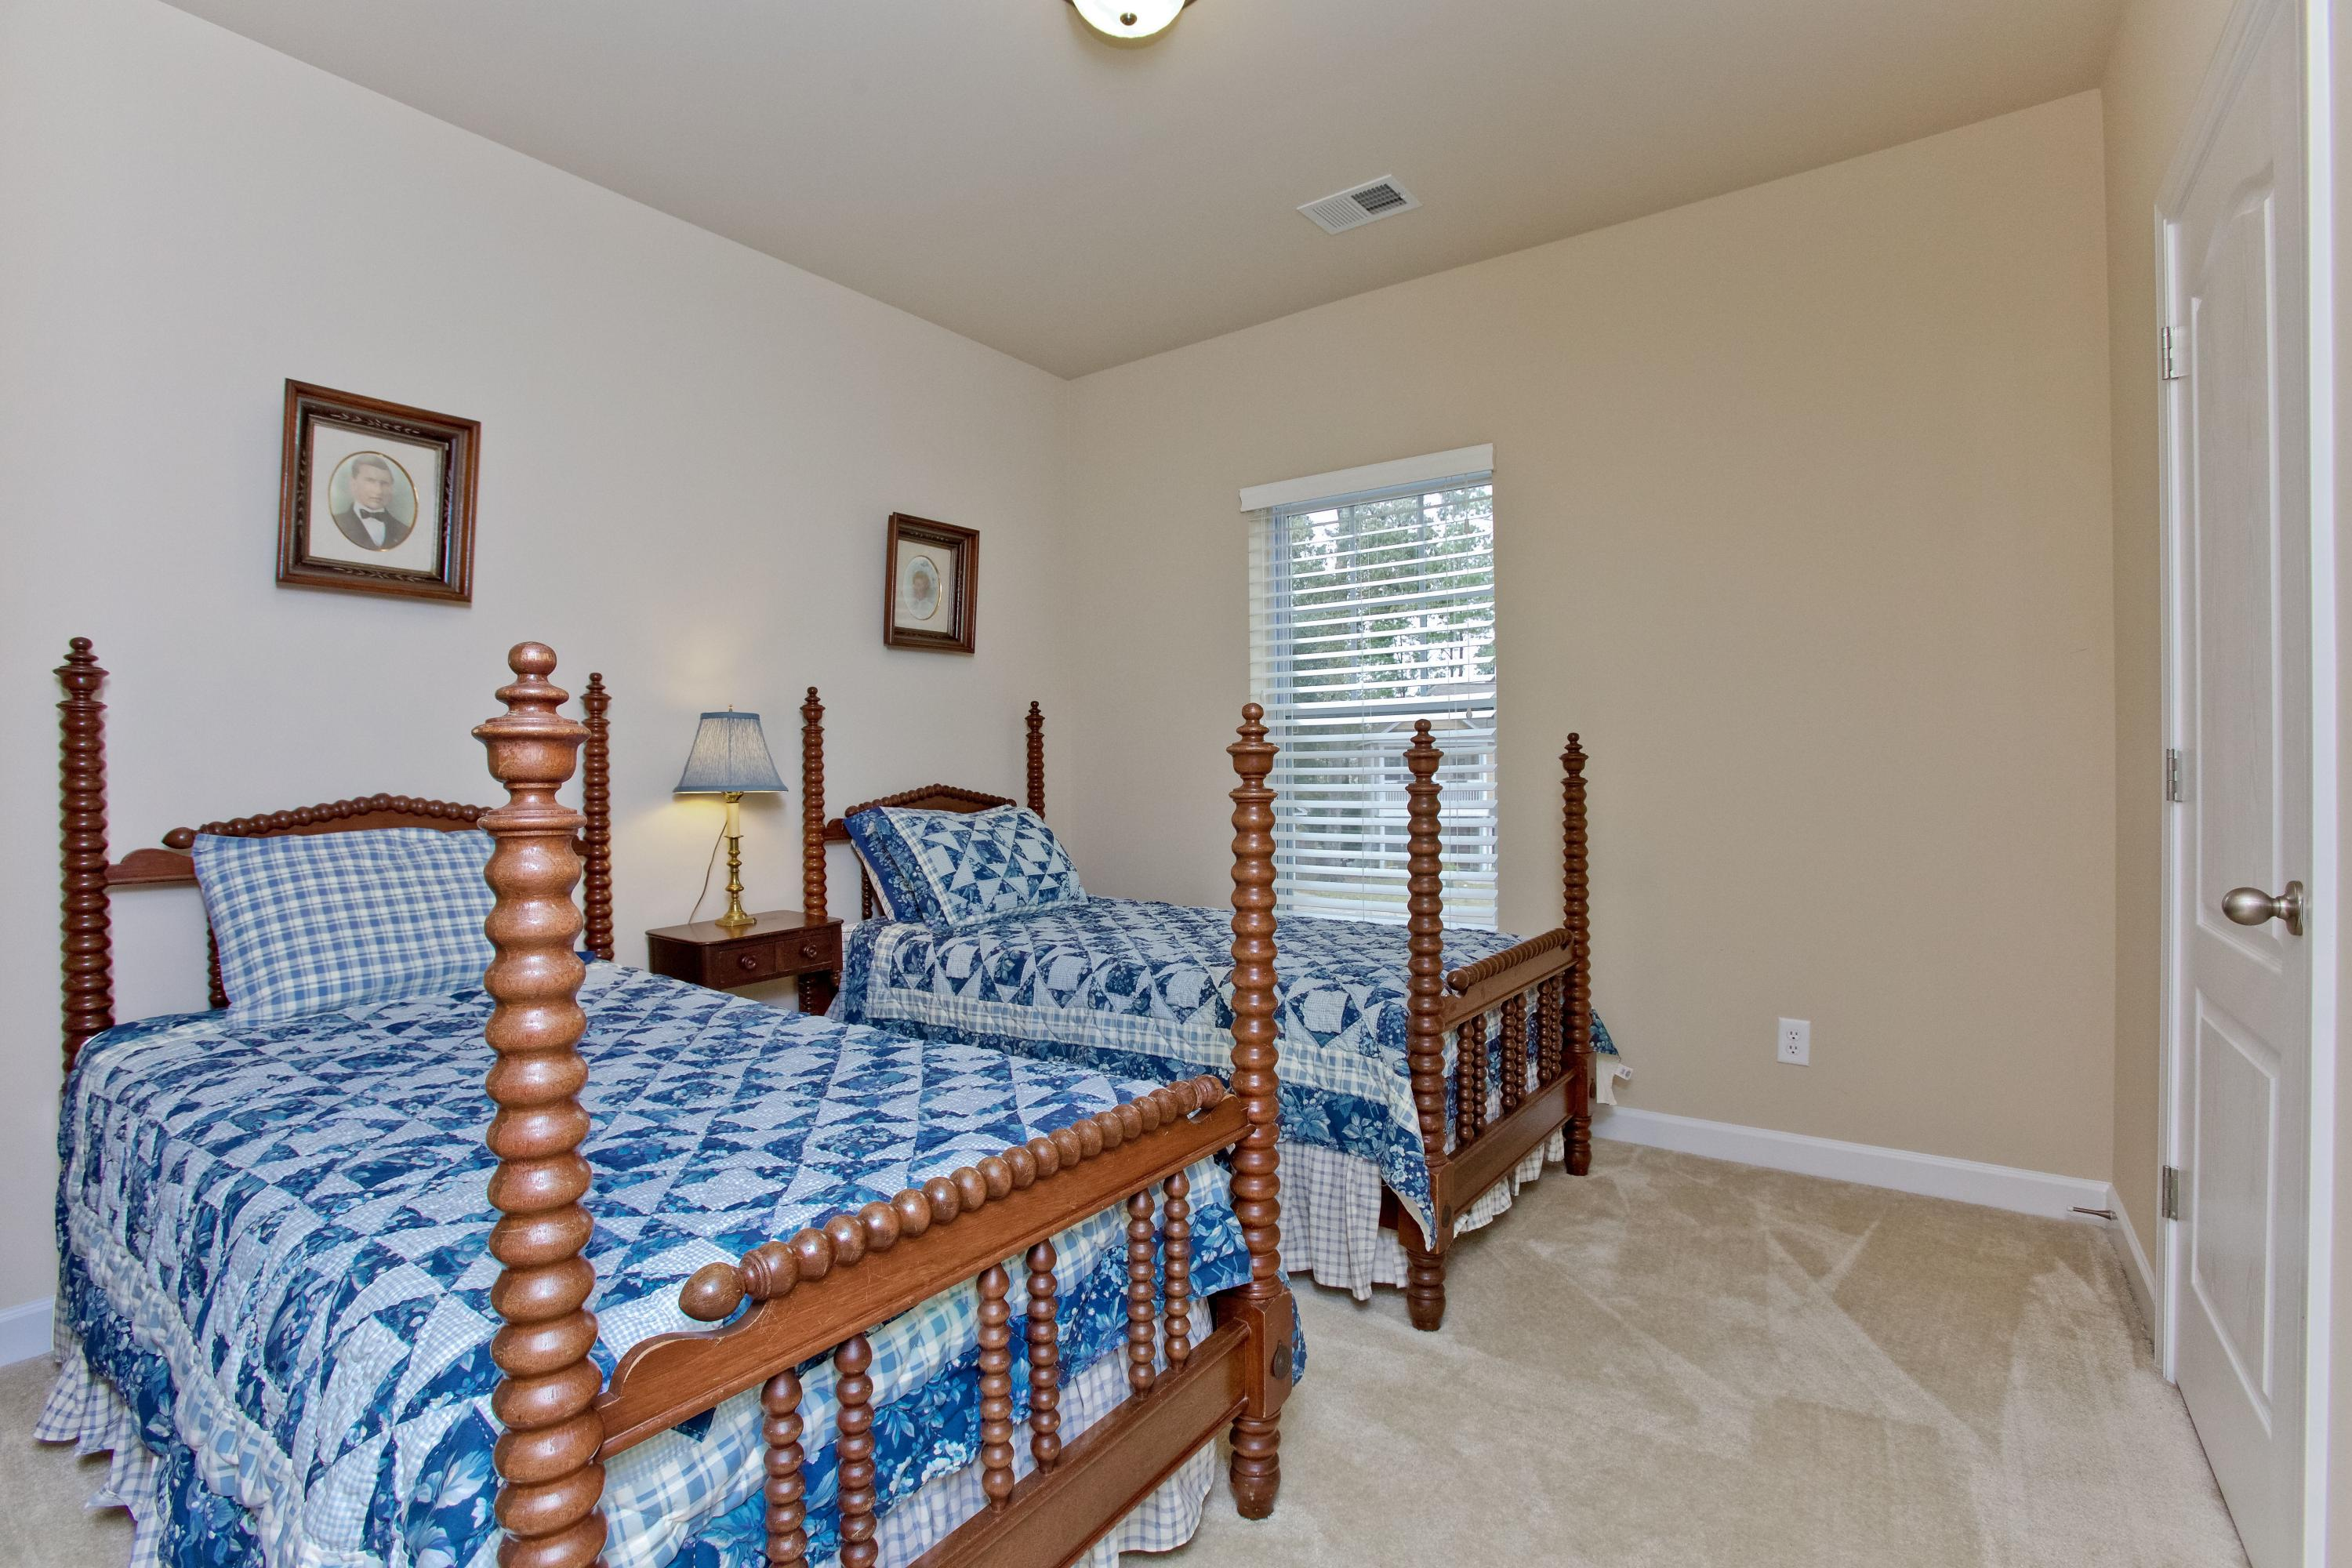 Appian Way Homes For Sale - 8473 Athens, North Charleston, SC - 24